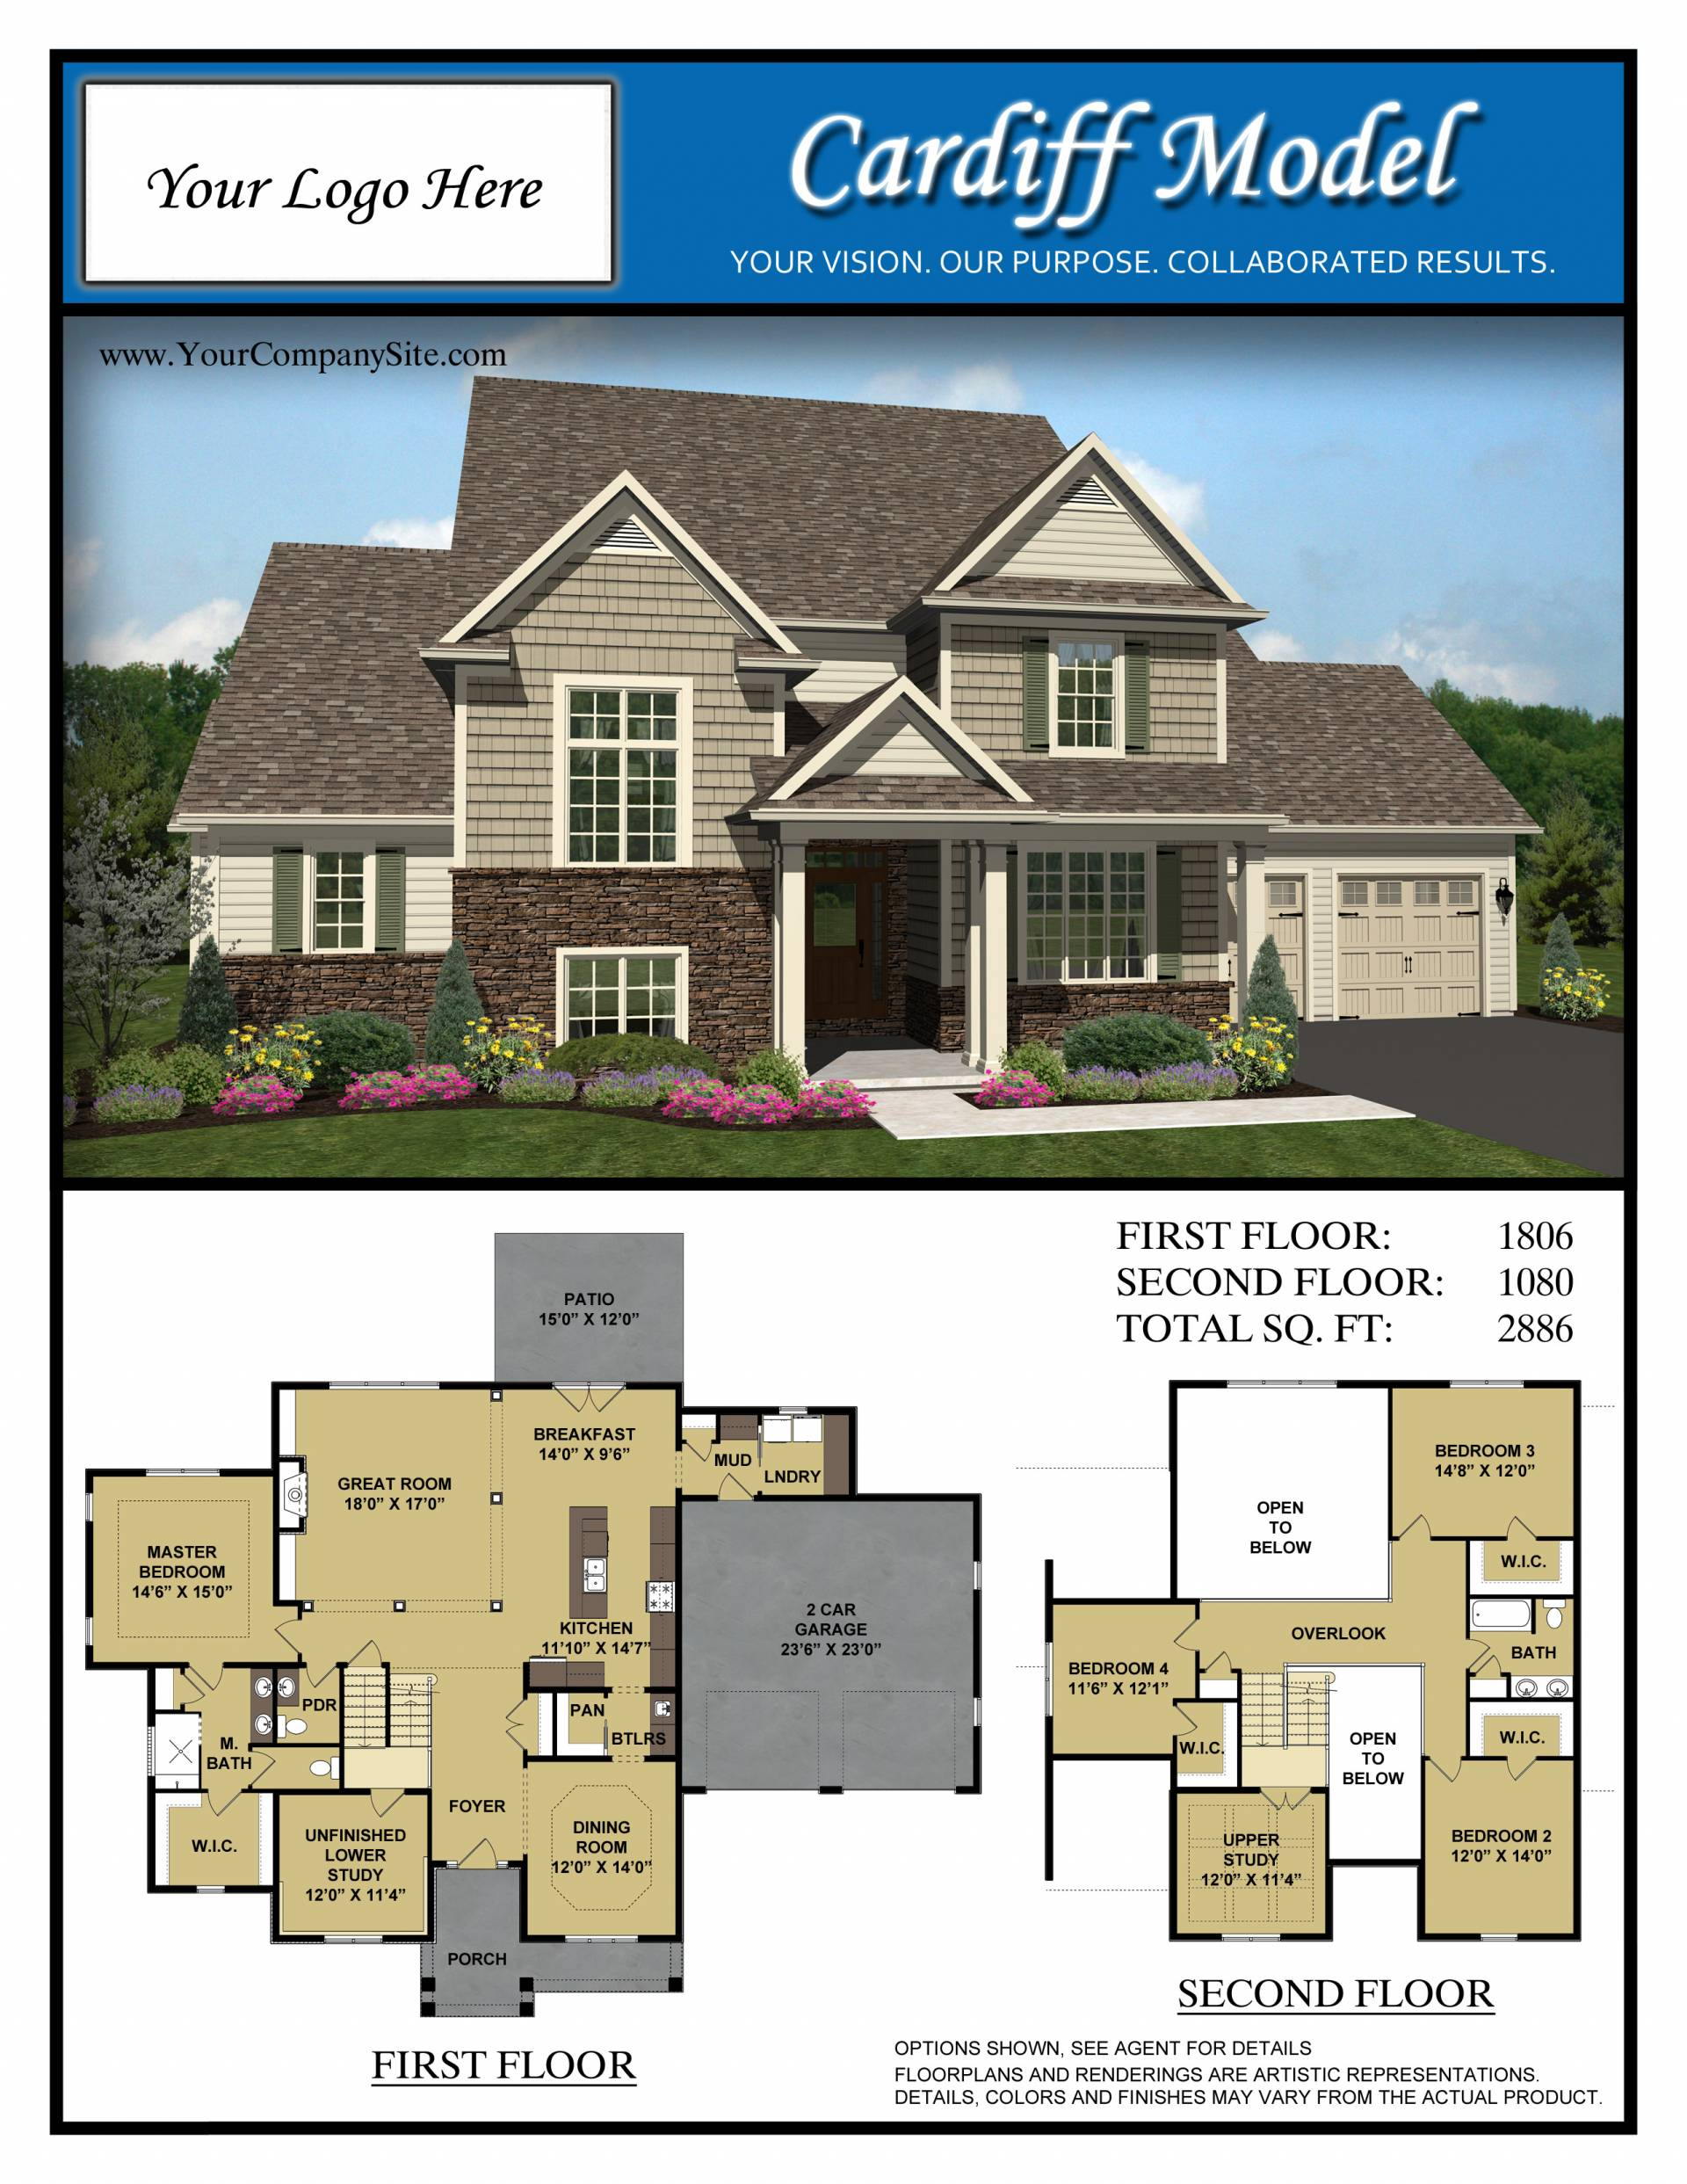 builder planning services home plans amp drafting builder planning services home plans amp drafting